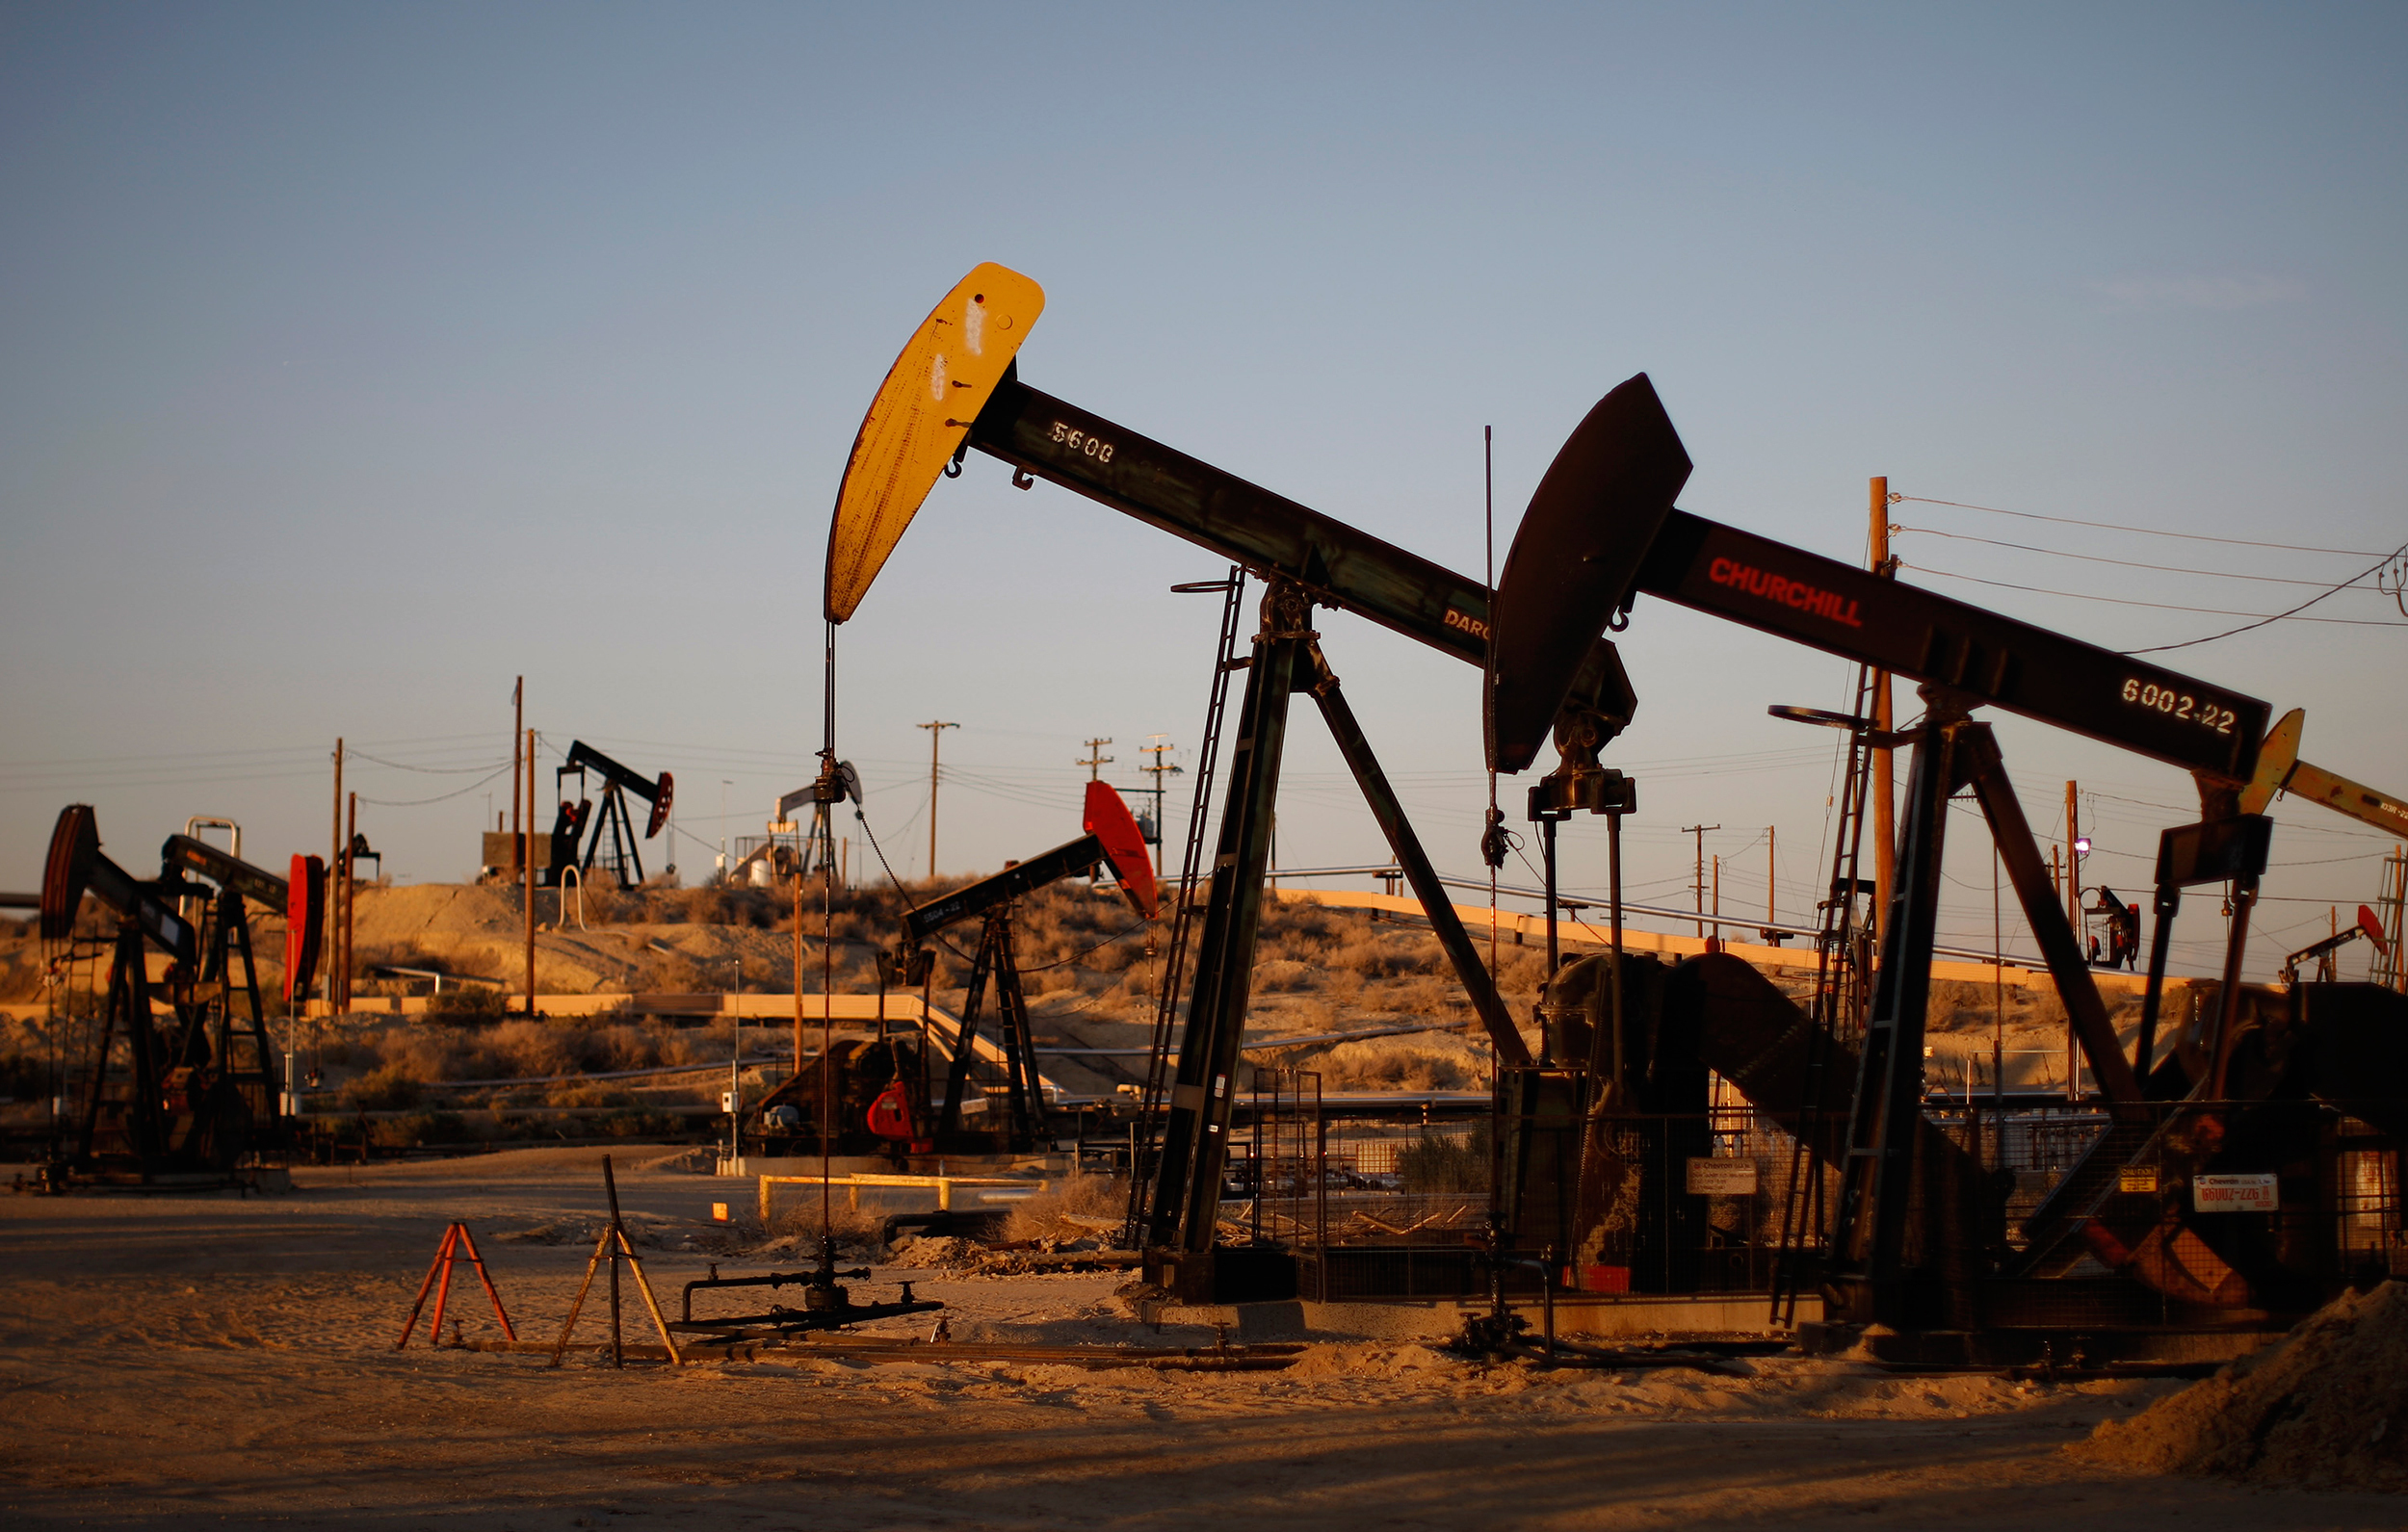 As Oil Prices Fall, Who Wins And Who Loses?